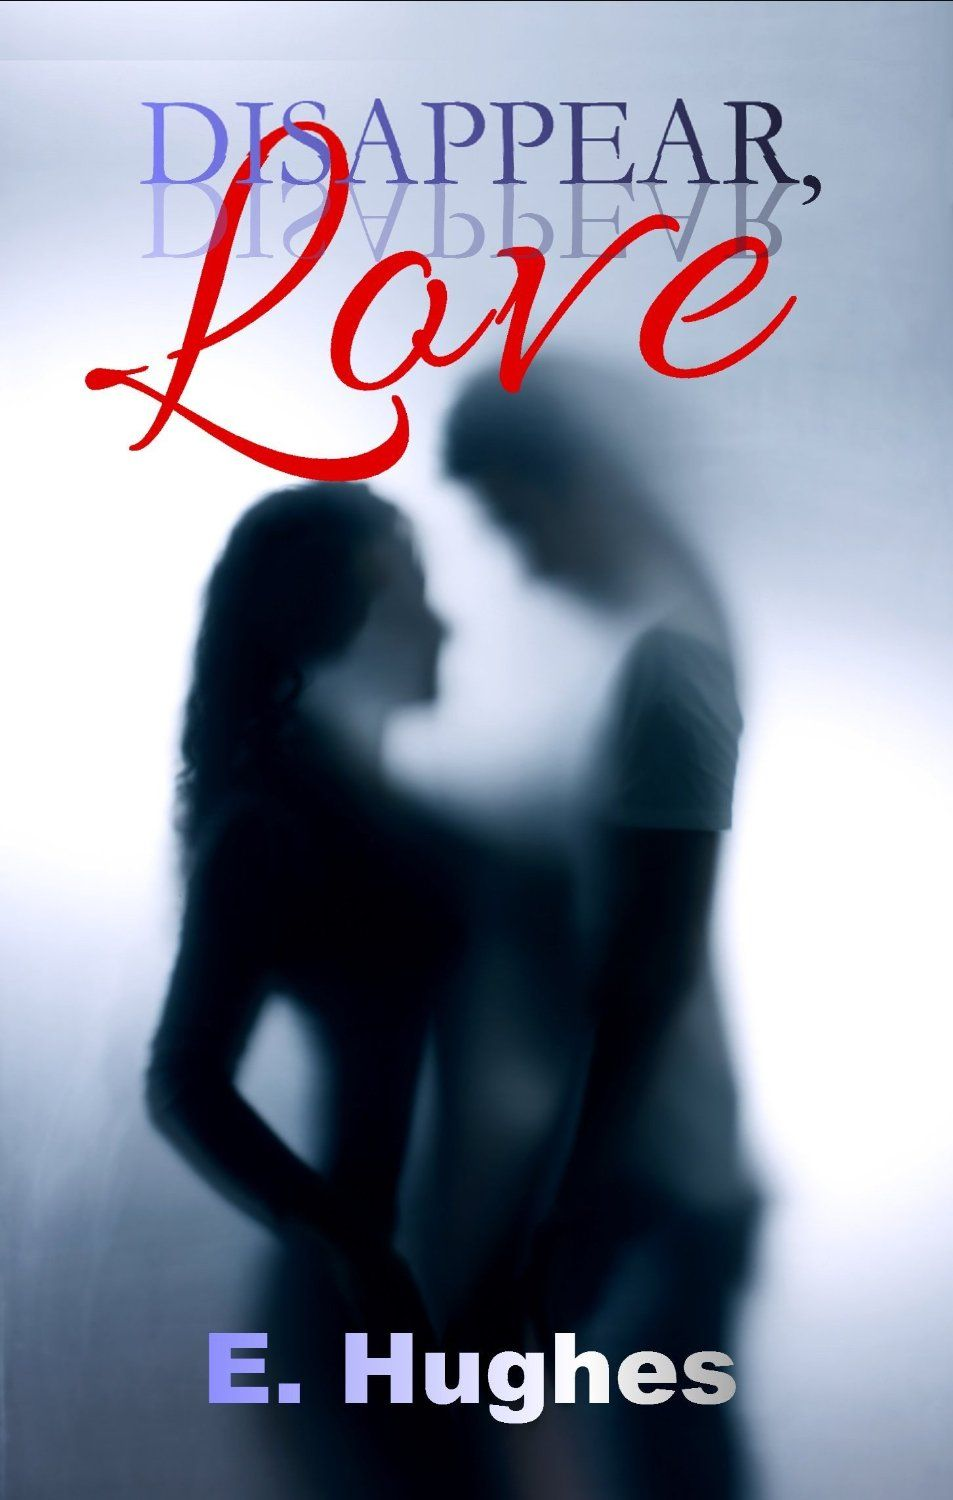 Disappear love 099 mystery thriller kindle book sale